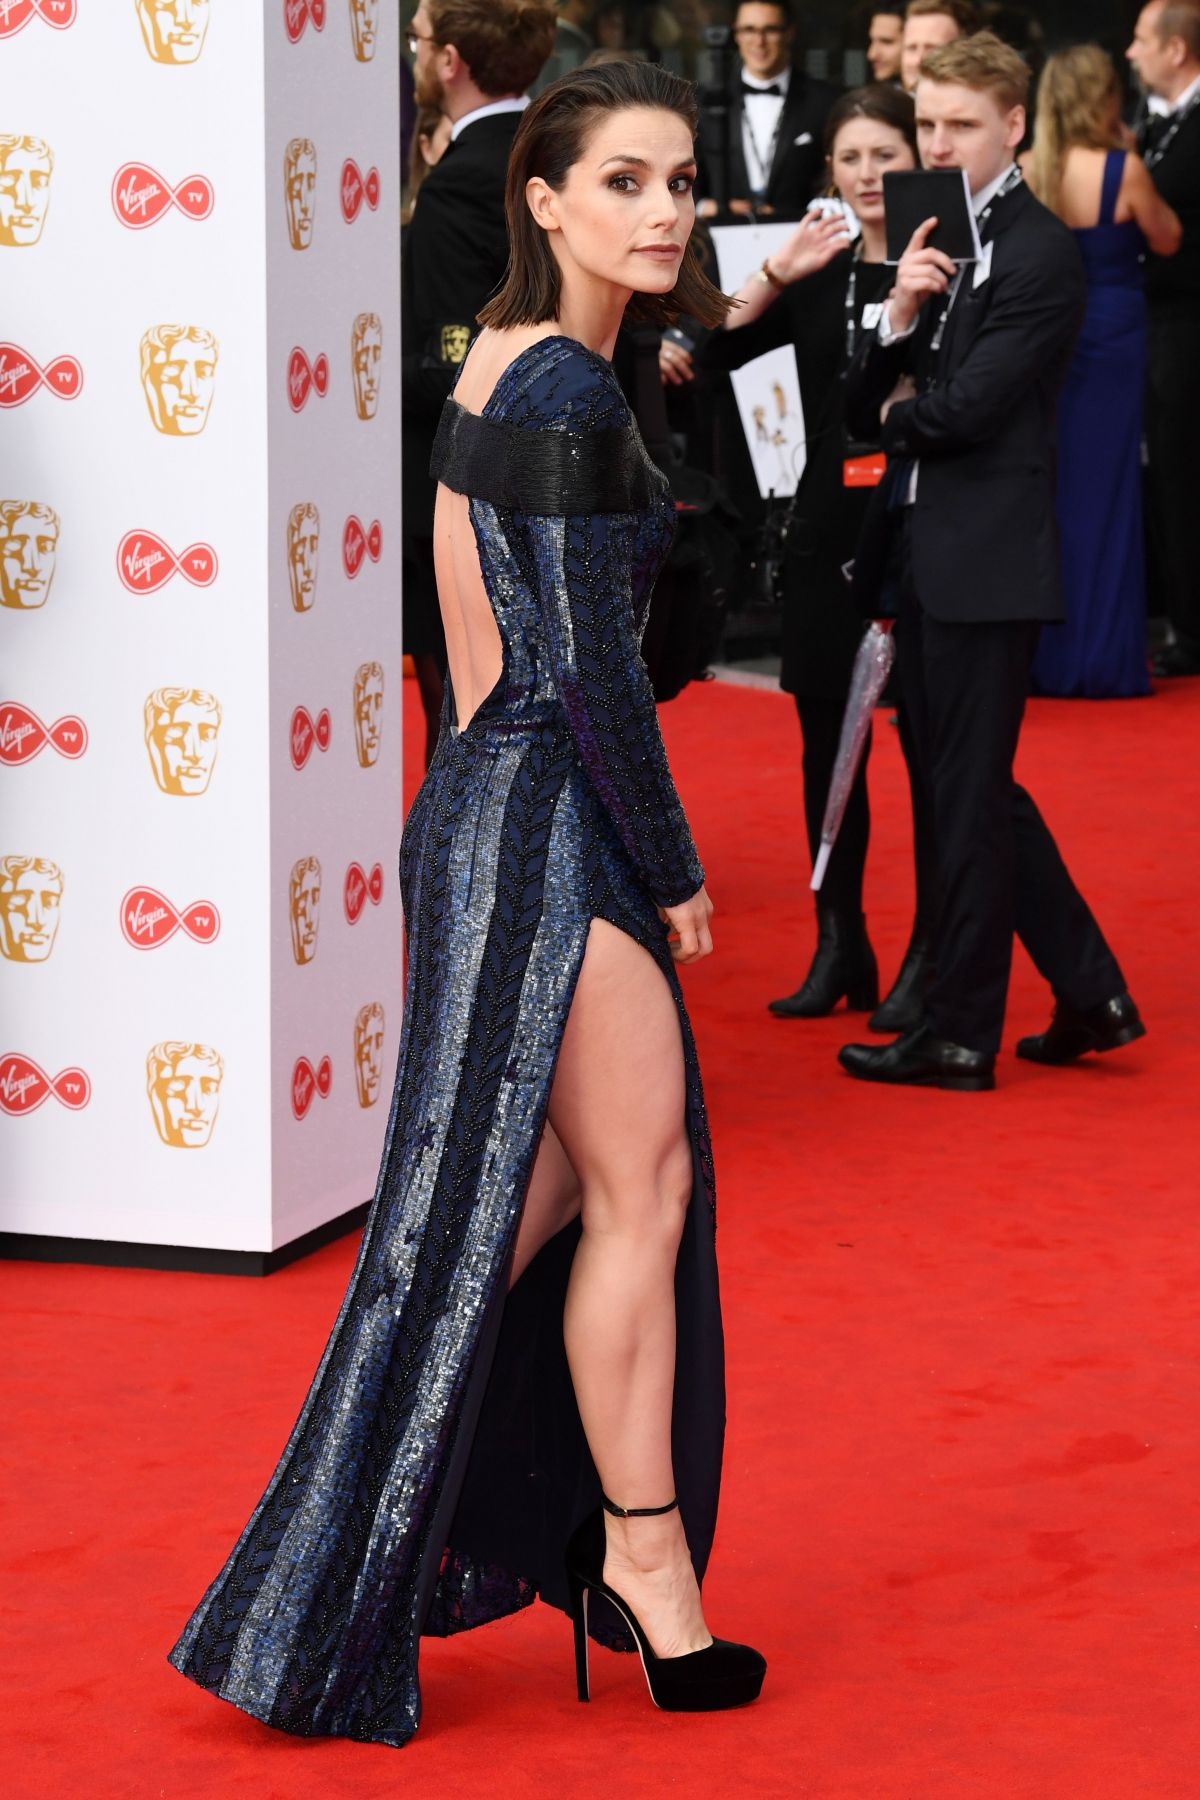 CHARLOTTE RILEY at 2017 British Academy Television Awards in London 05/14/2017 - HawtCelebs